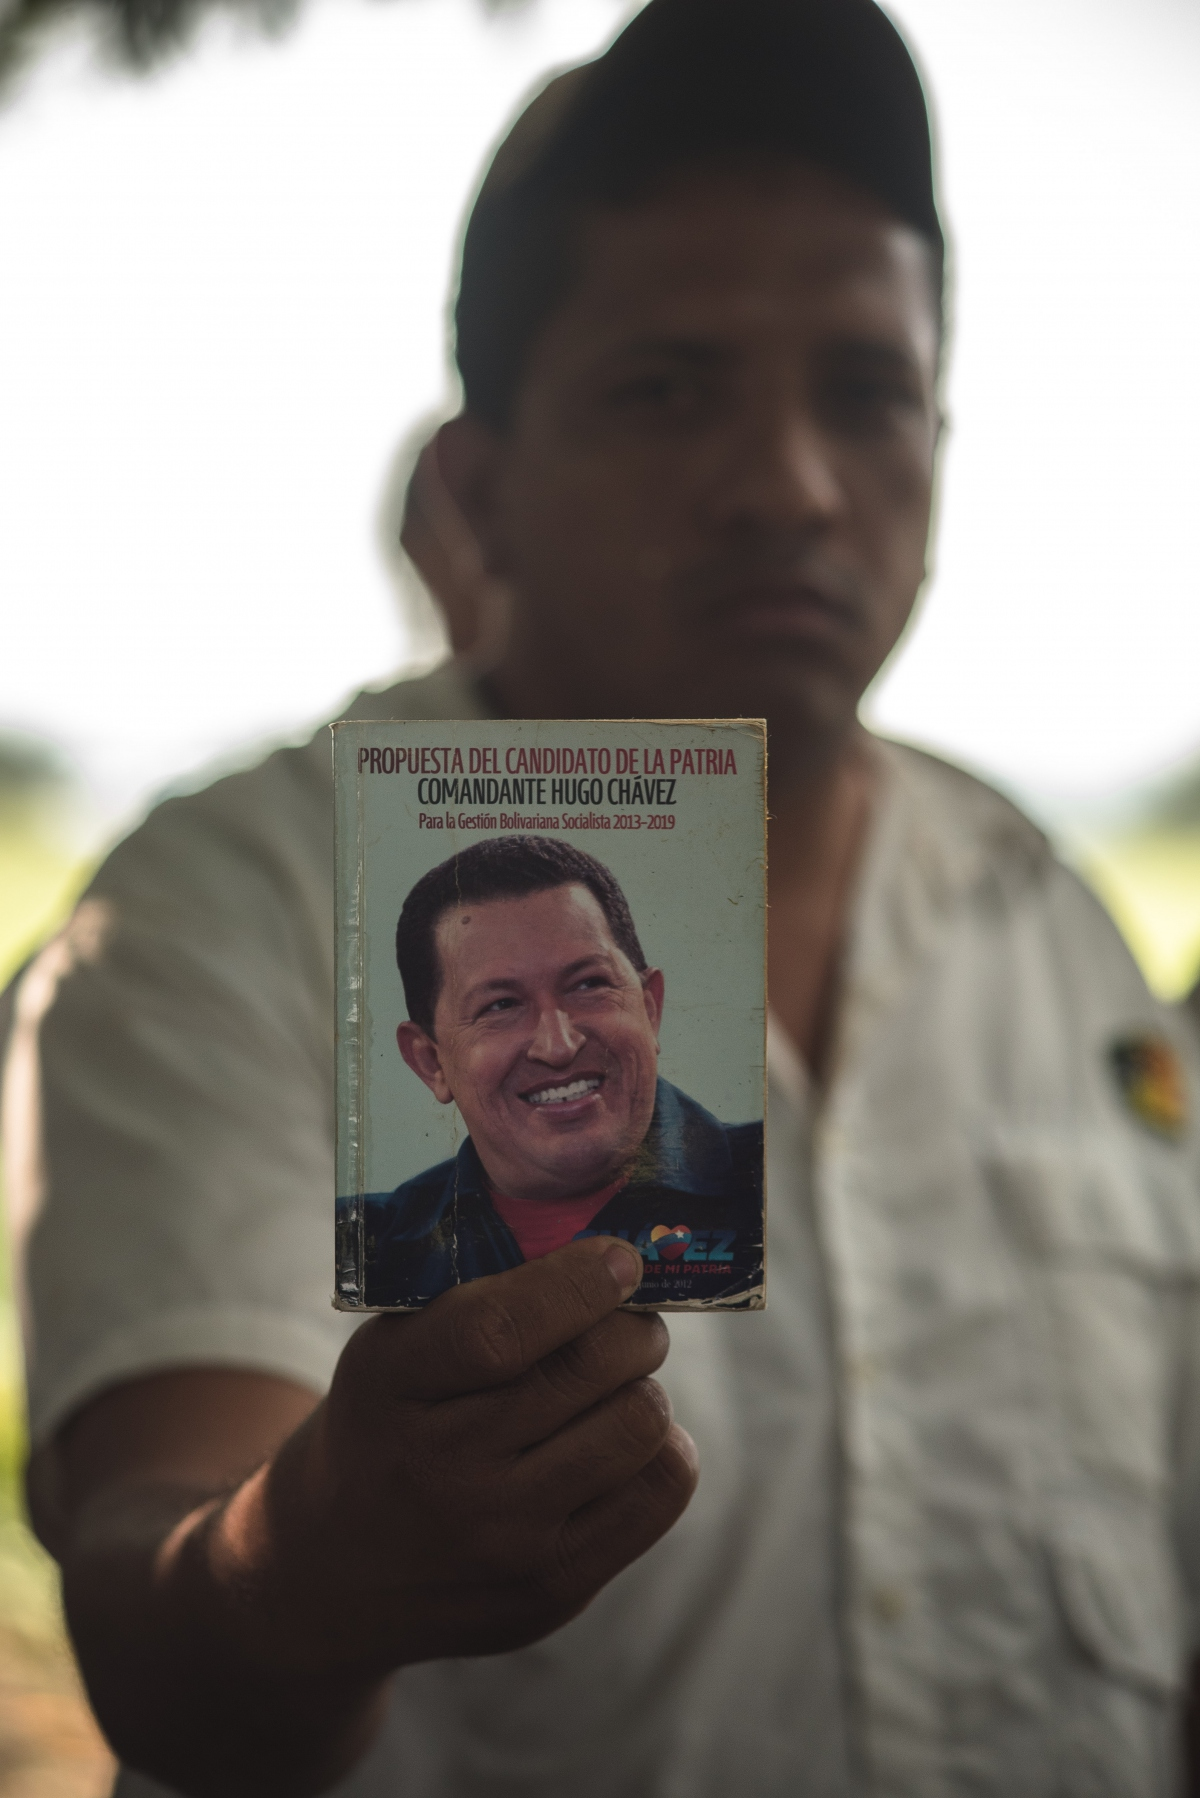 A local resident holds up a book containing proposals by Hugo Chavez. (Marcelo Volpe)